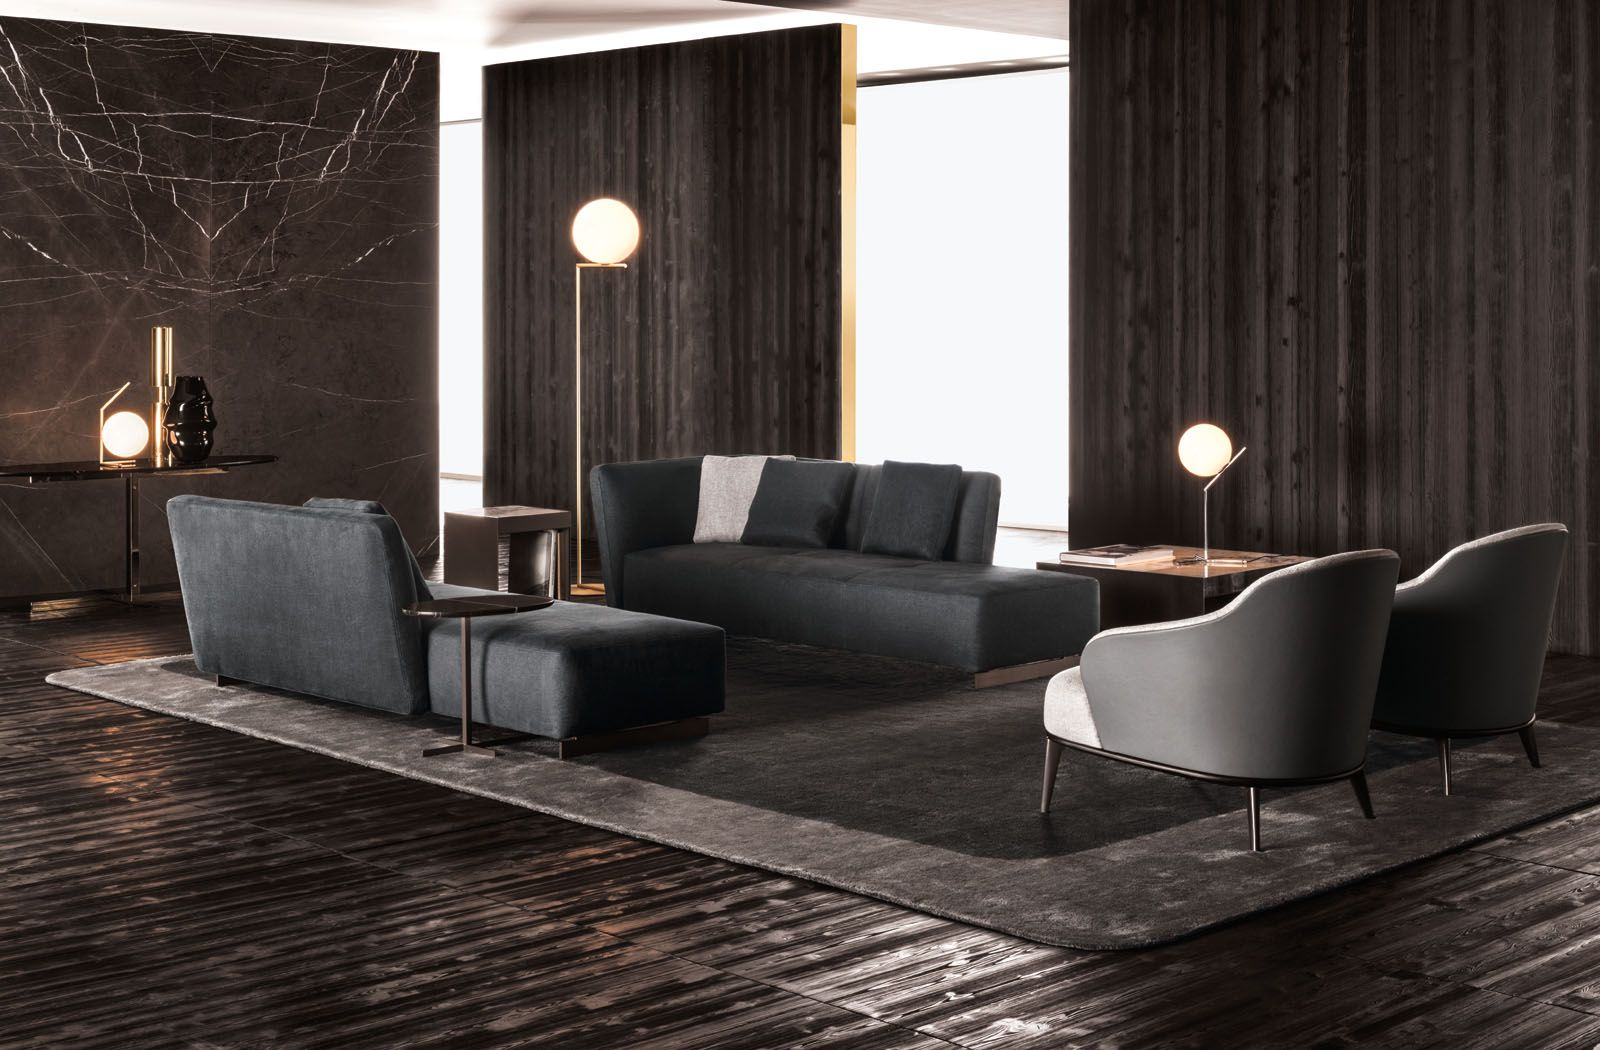 Lounge Seymour Seating System And Leslie Armchairs Rodolfo